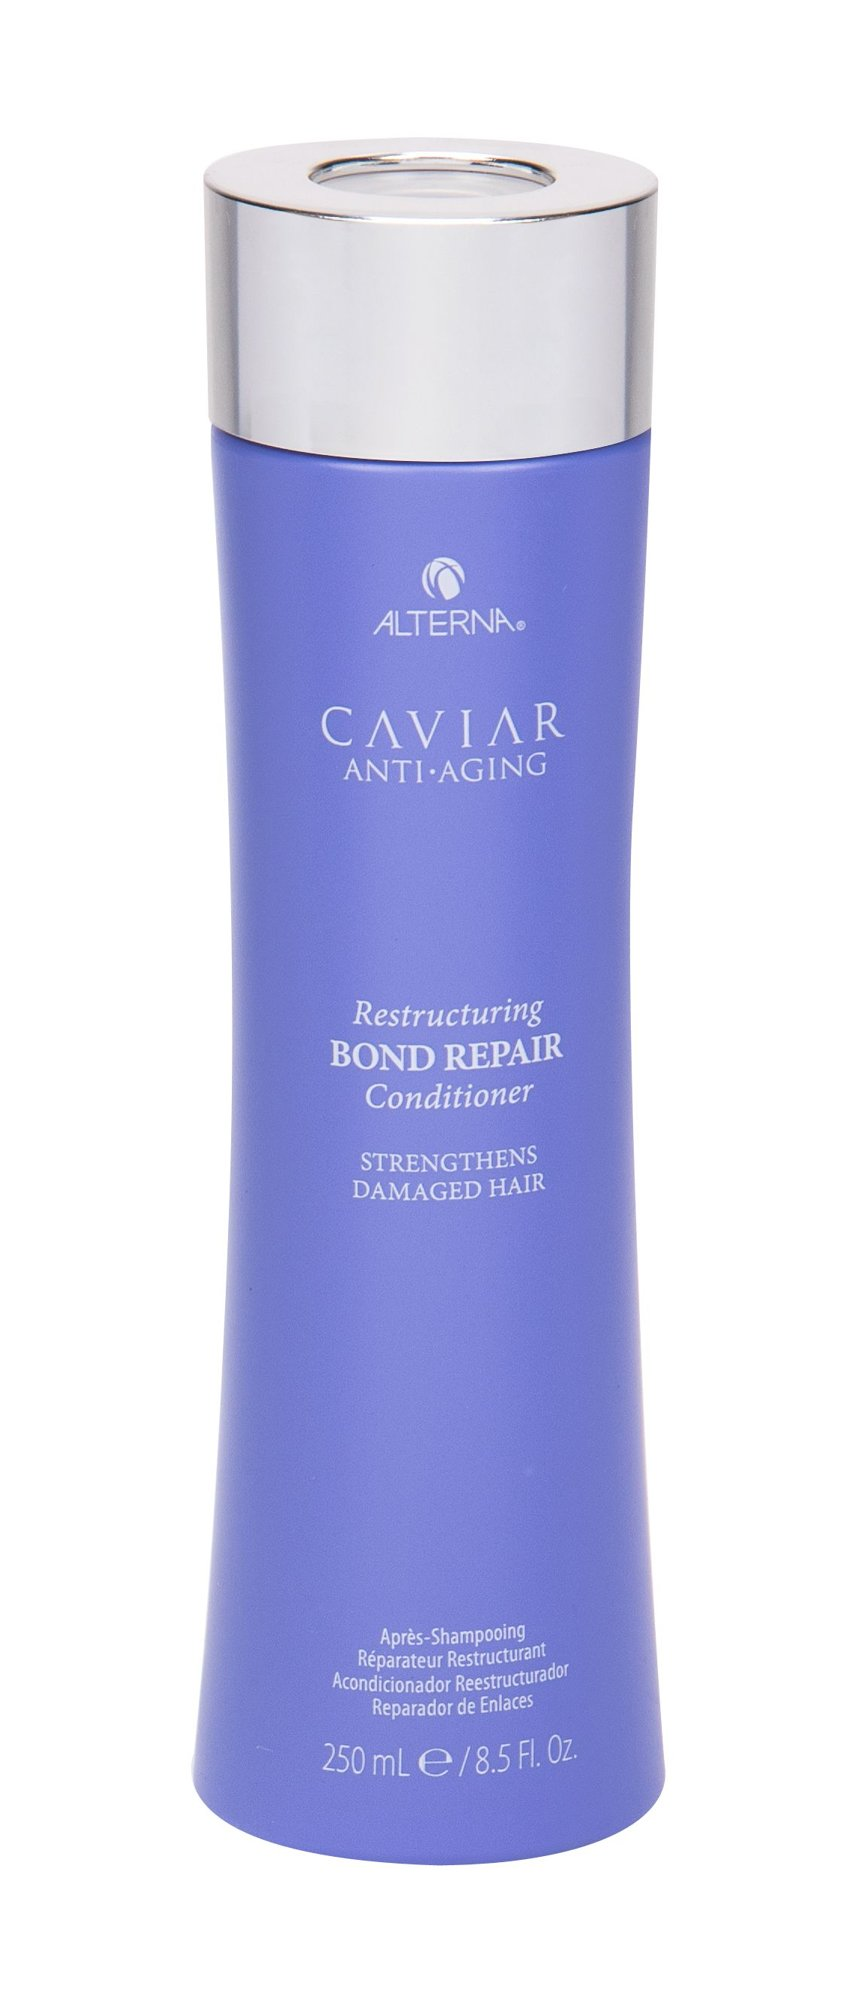 Alterna Caviar Anti-Aging Conditioner 250ml